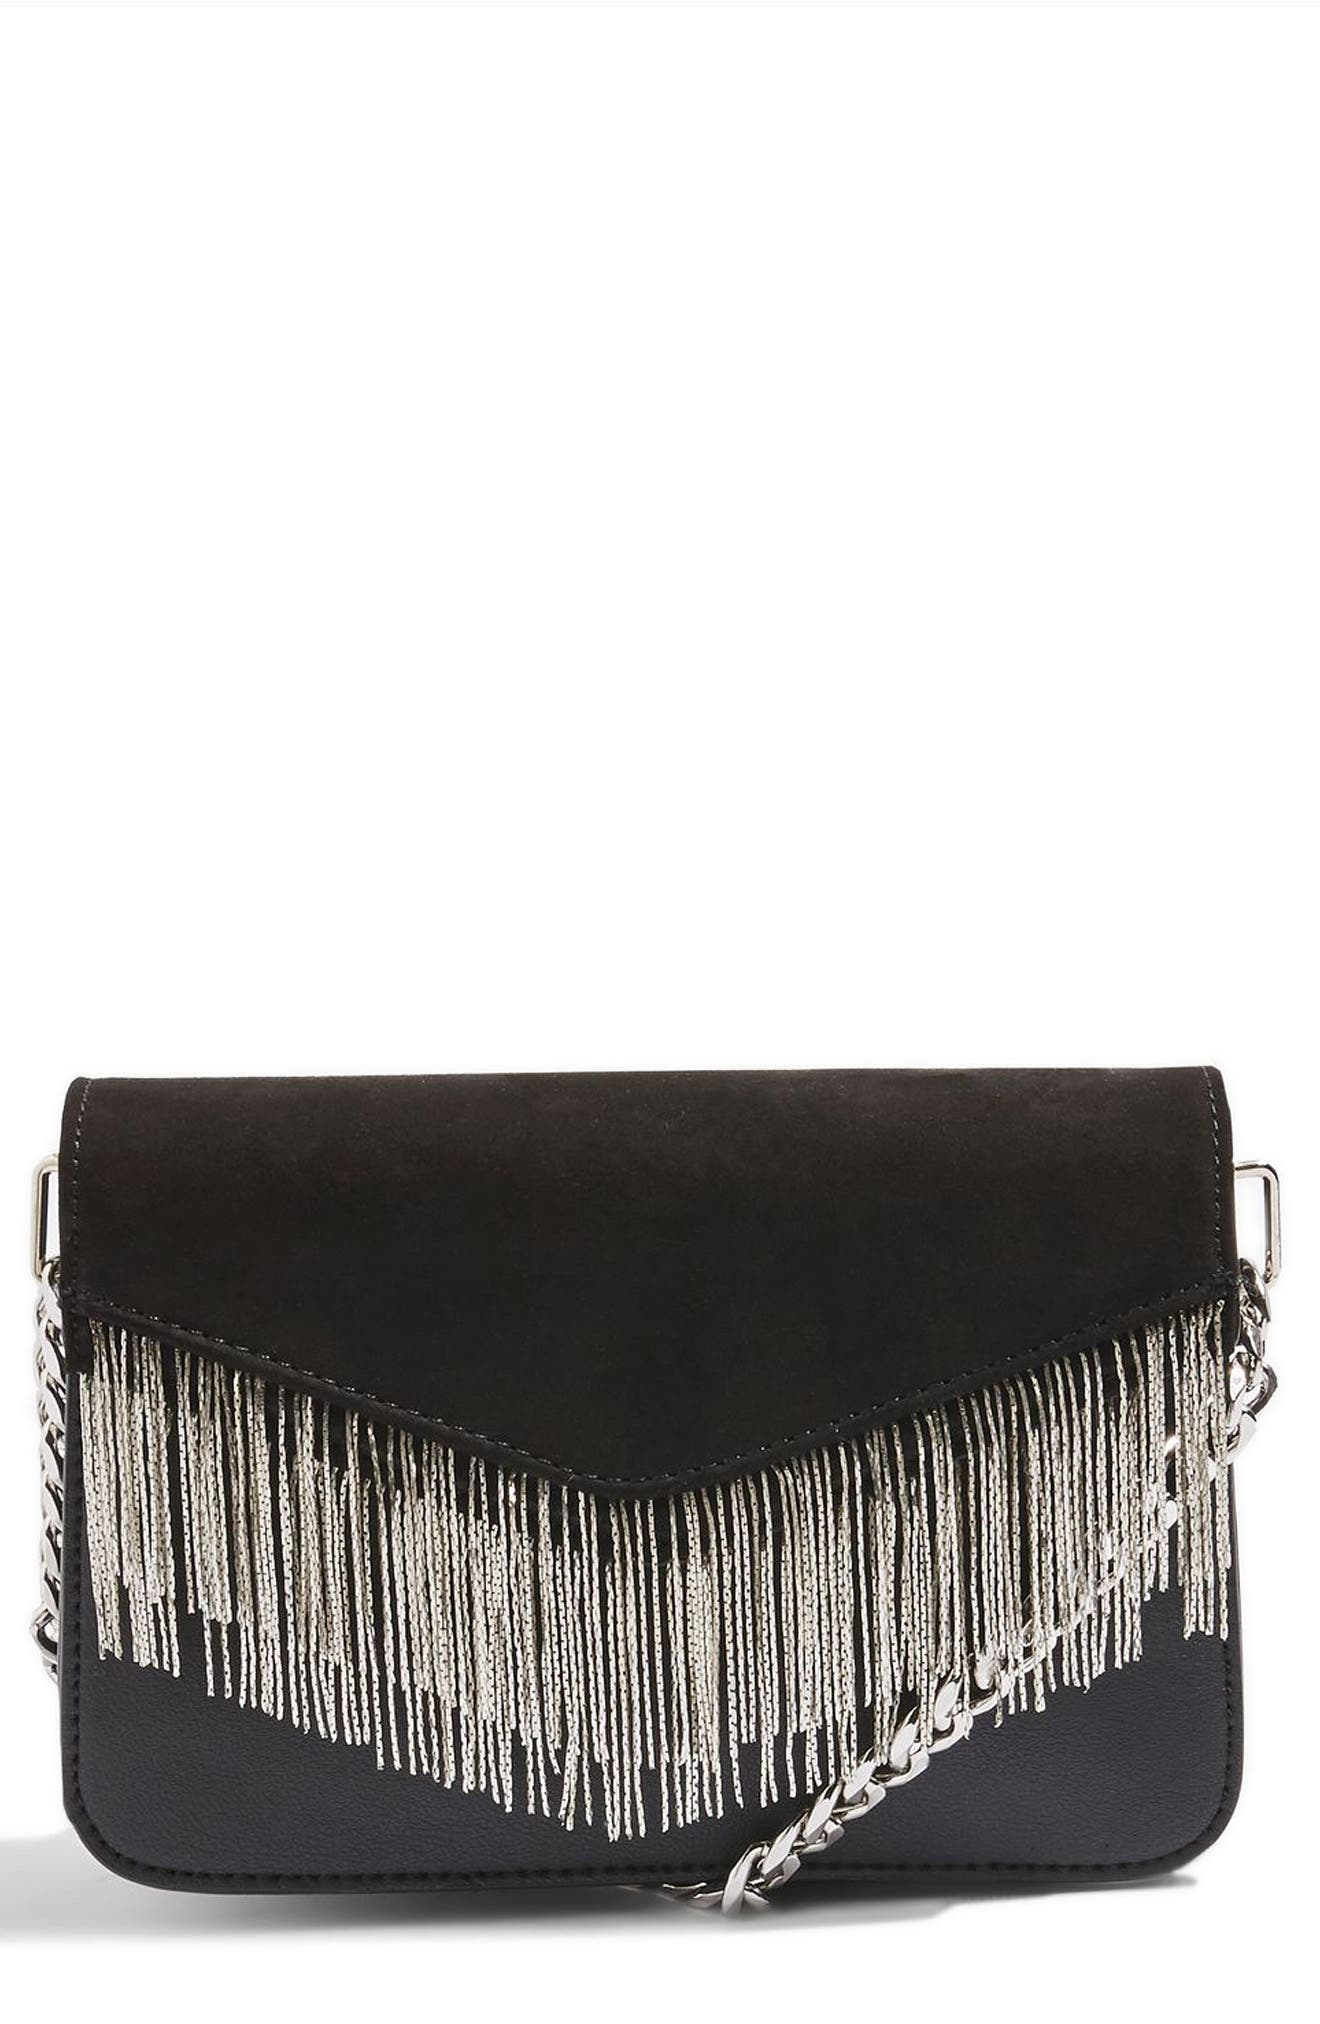 Topshop Remy Chain Flap Faux Leather Crossbody Bag